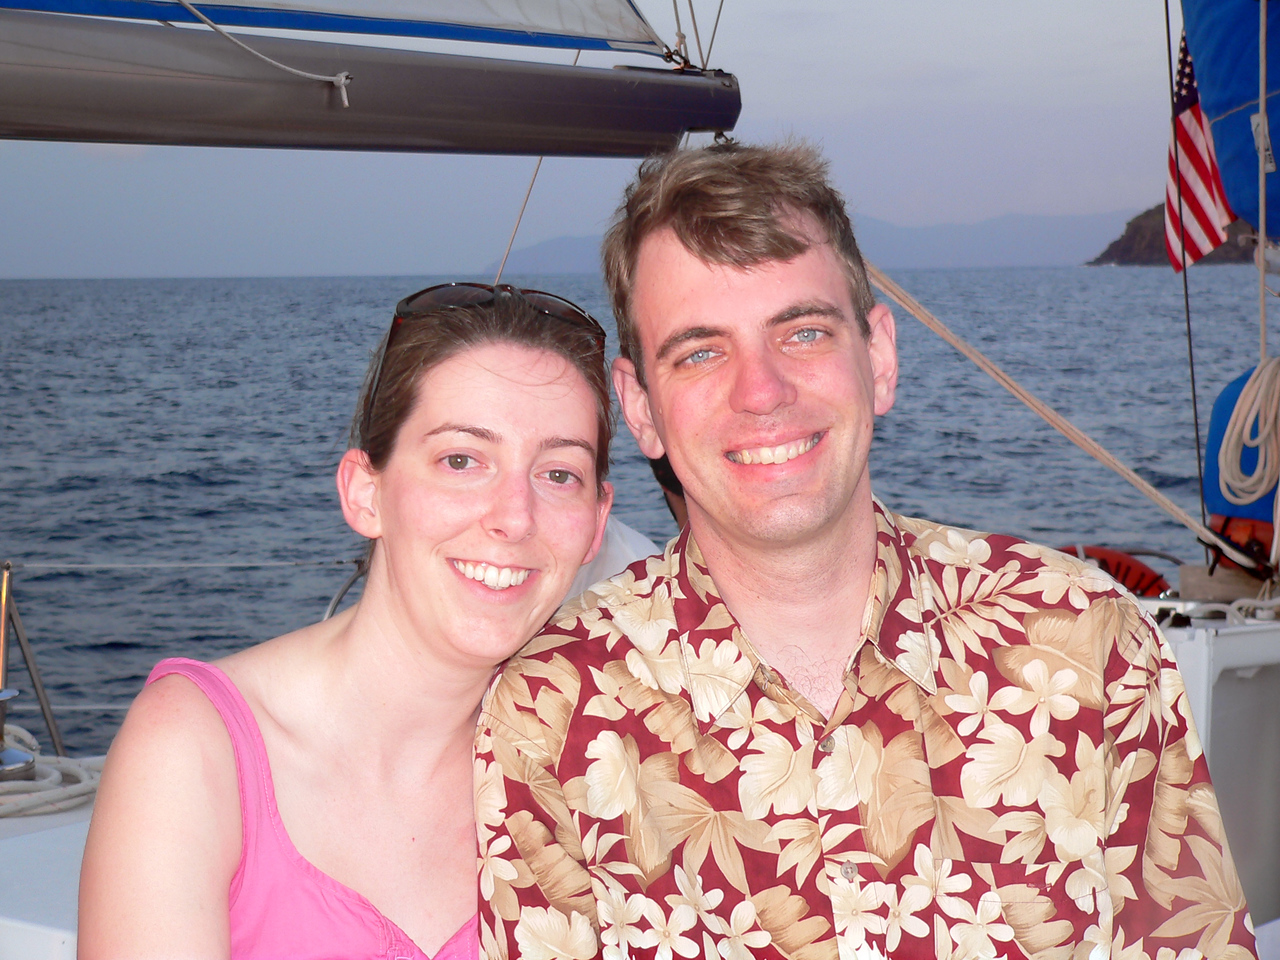 Julia and I on our sunset cruise in the waters near the resort.